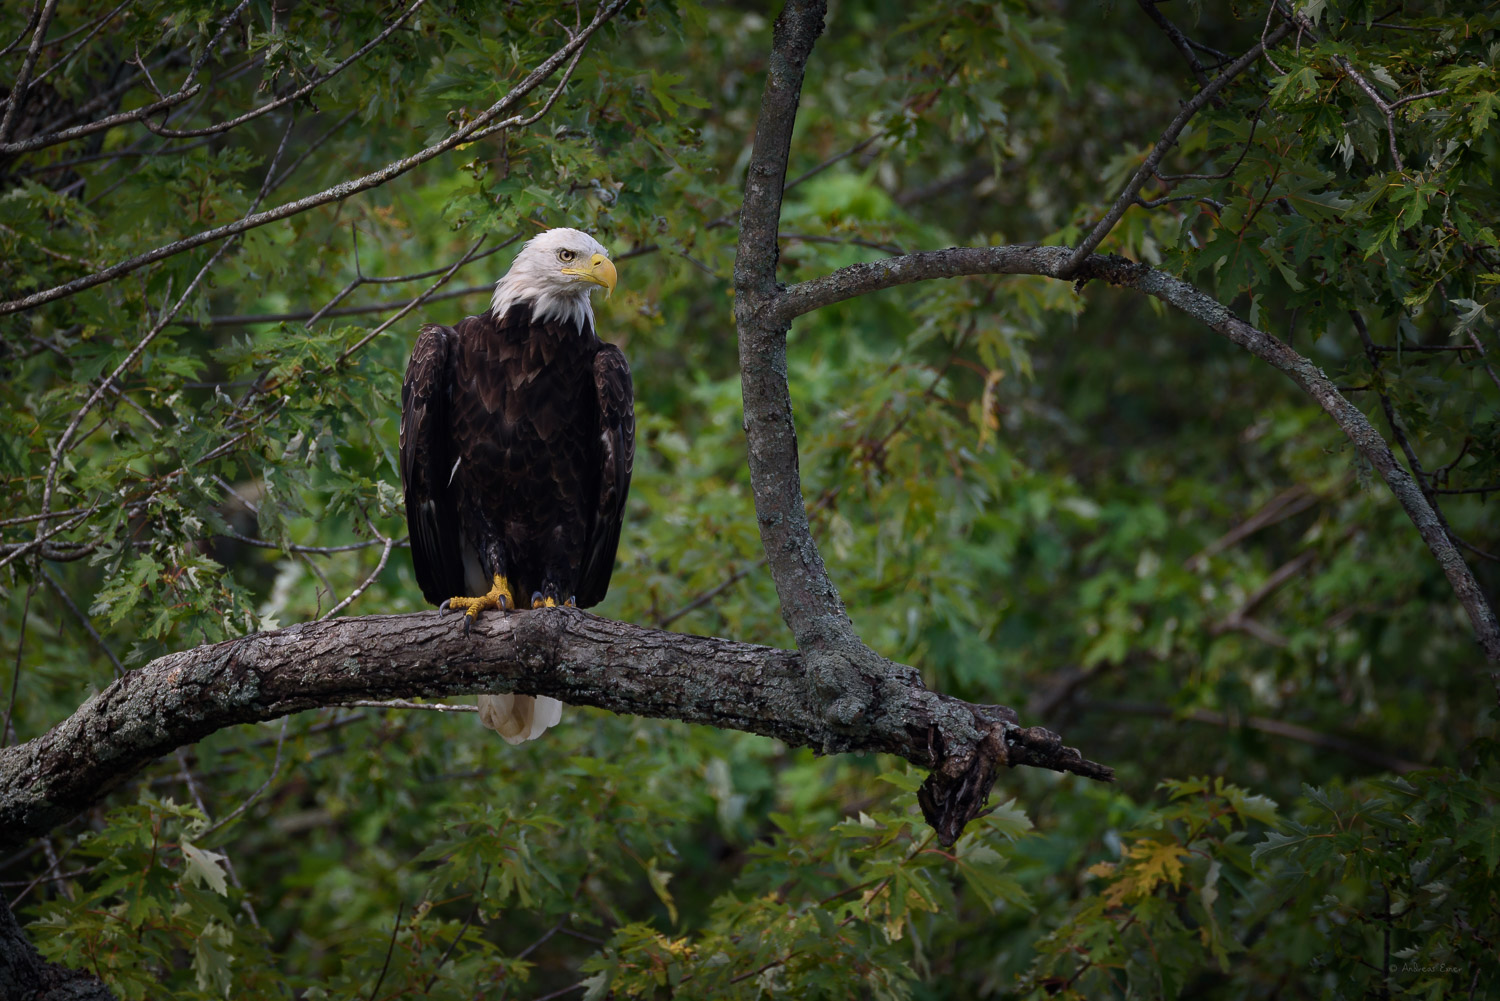 Bald Eagle, Mississippi River, Johnson Slough, Iowa